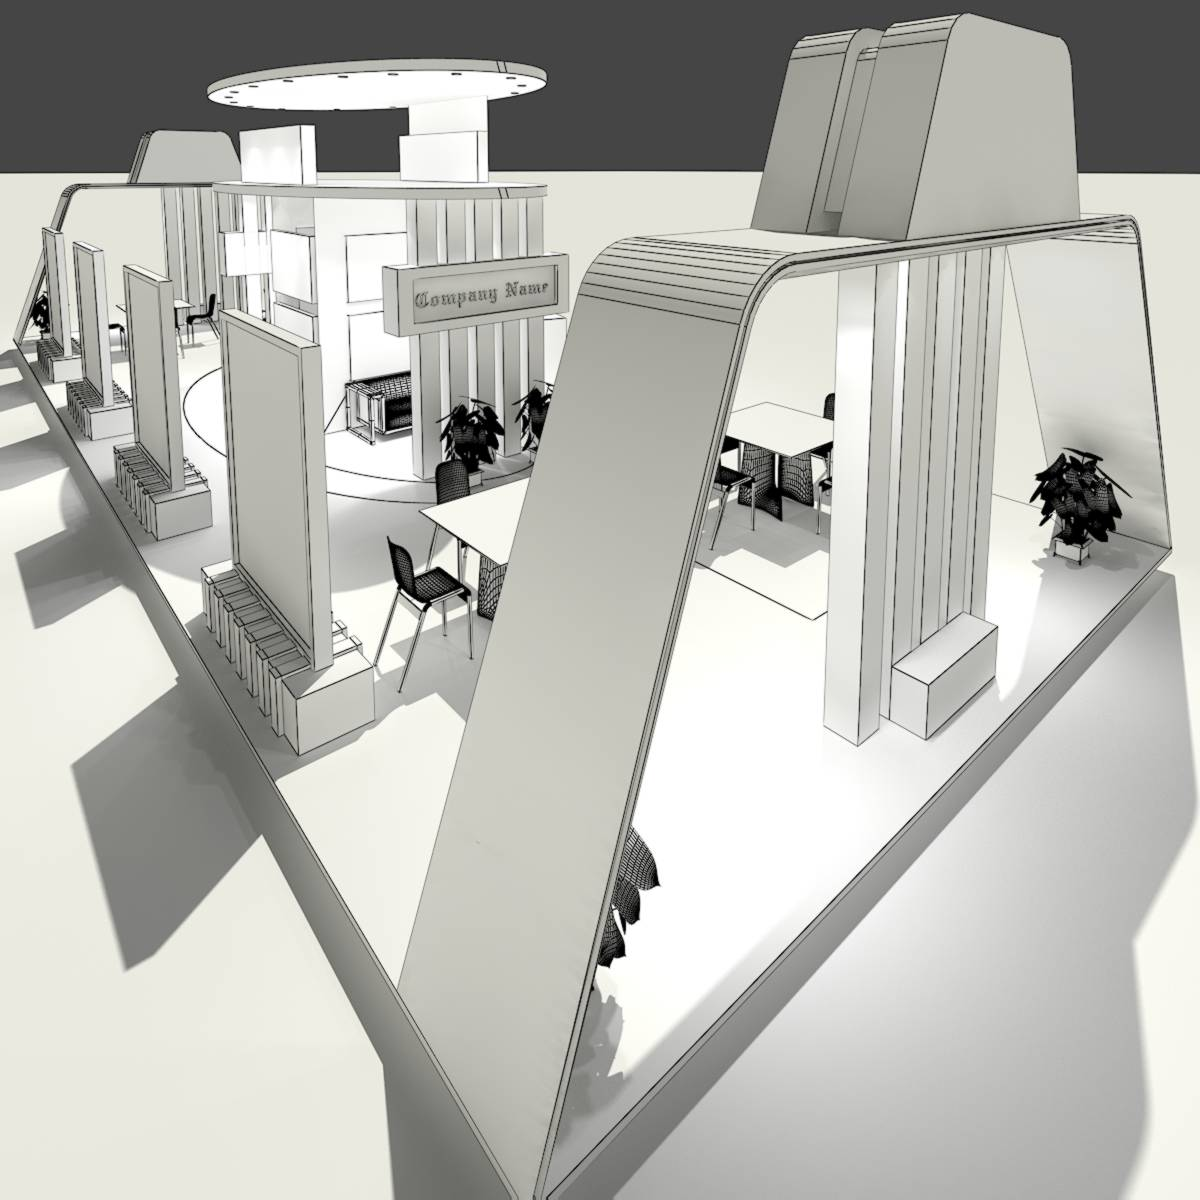 Exhibition Stand Design 3d Max : Exhibition stand d model